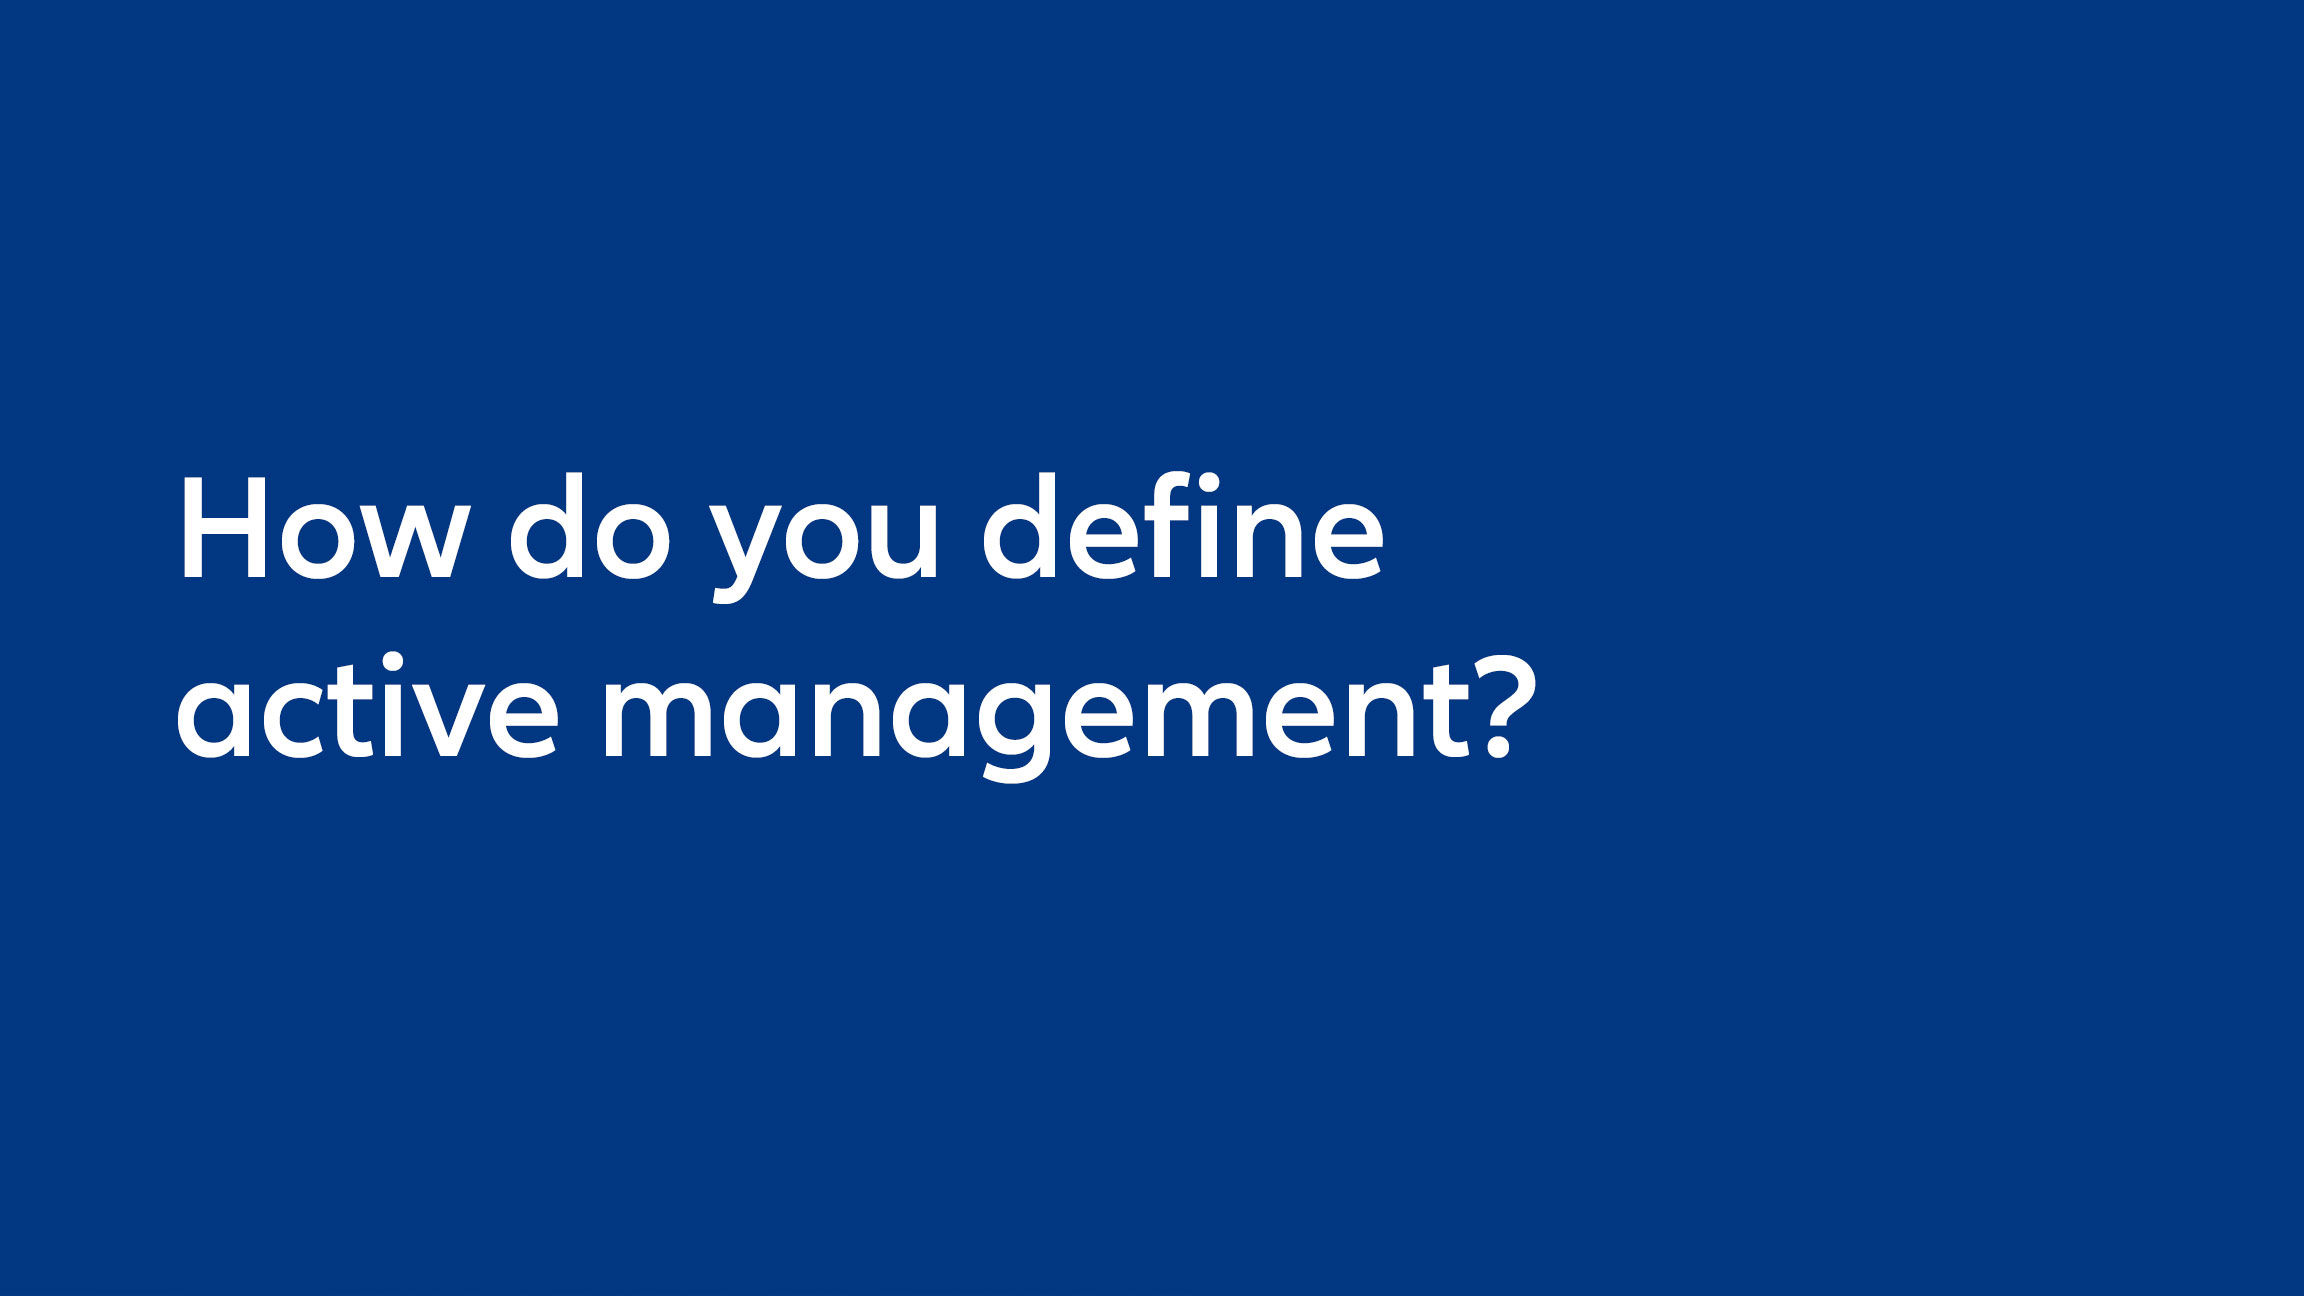 How do you define active management?